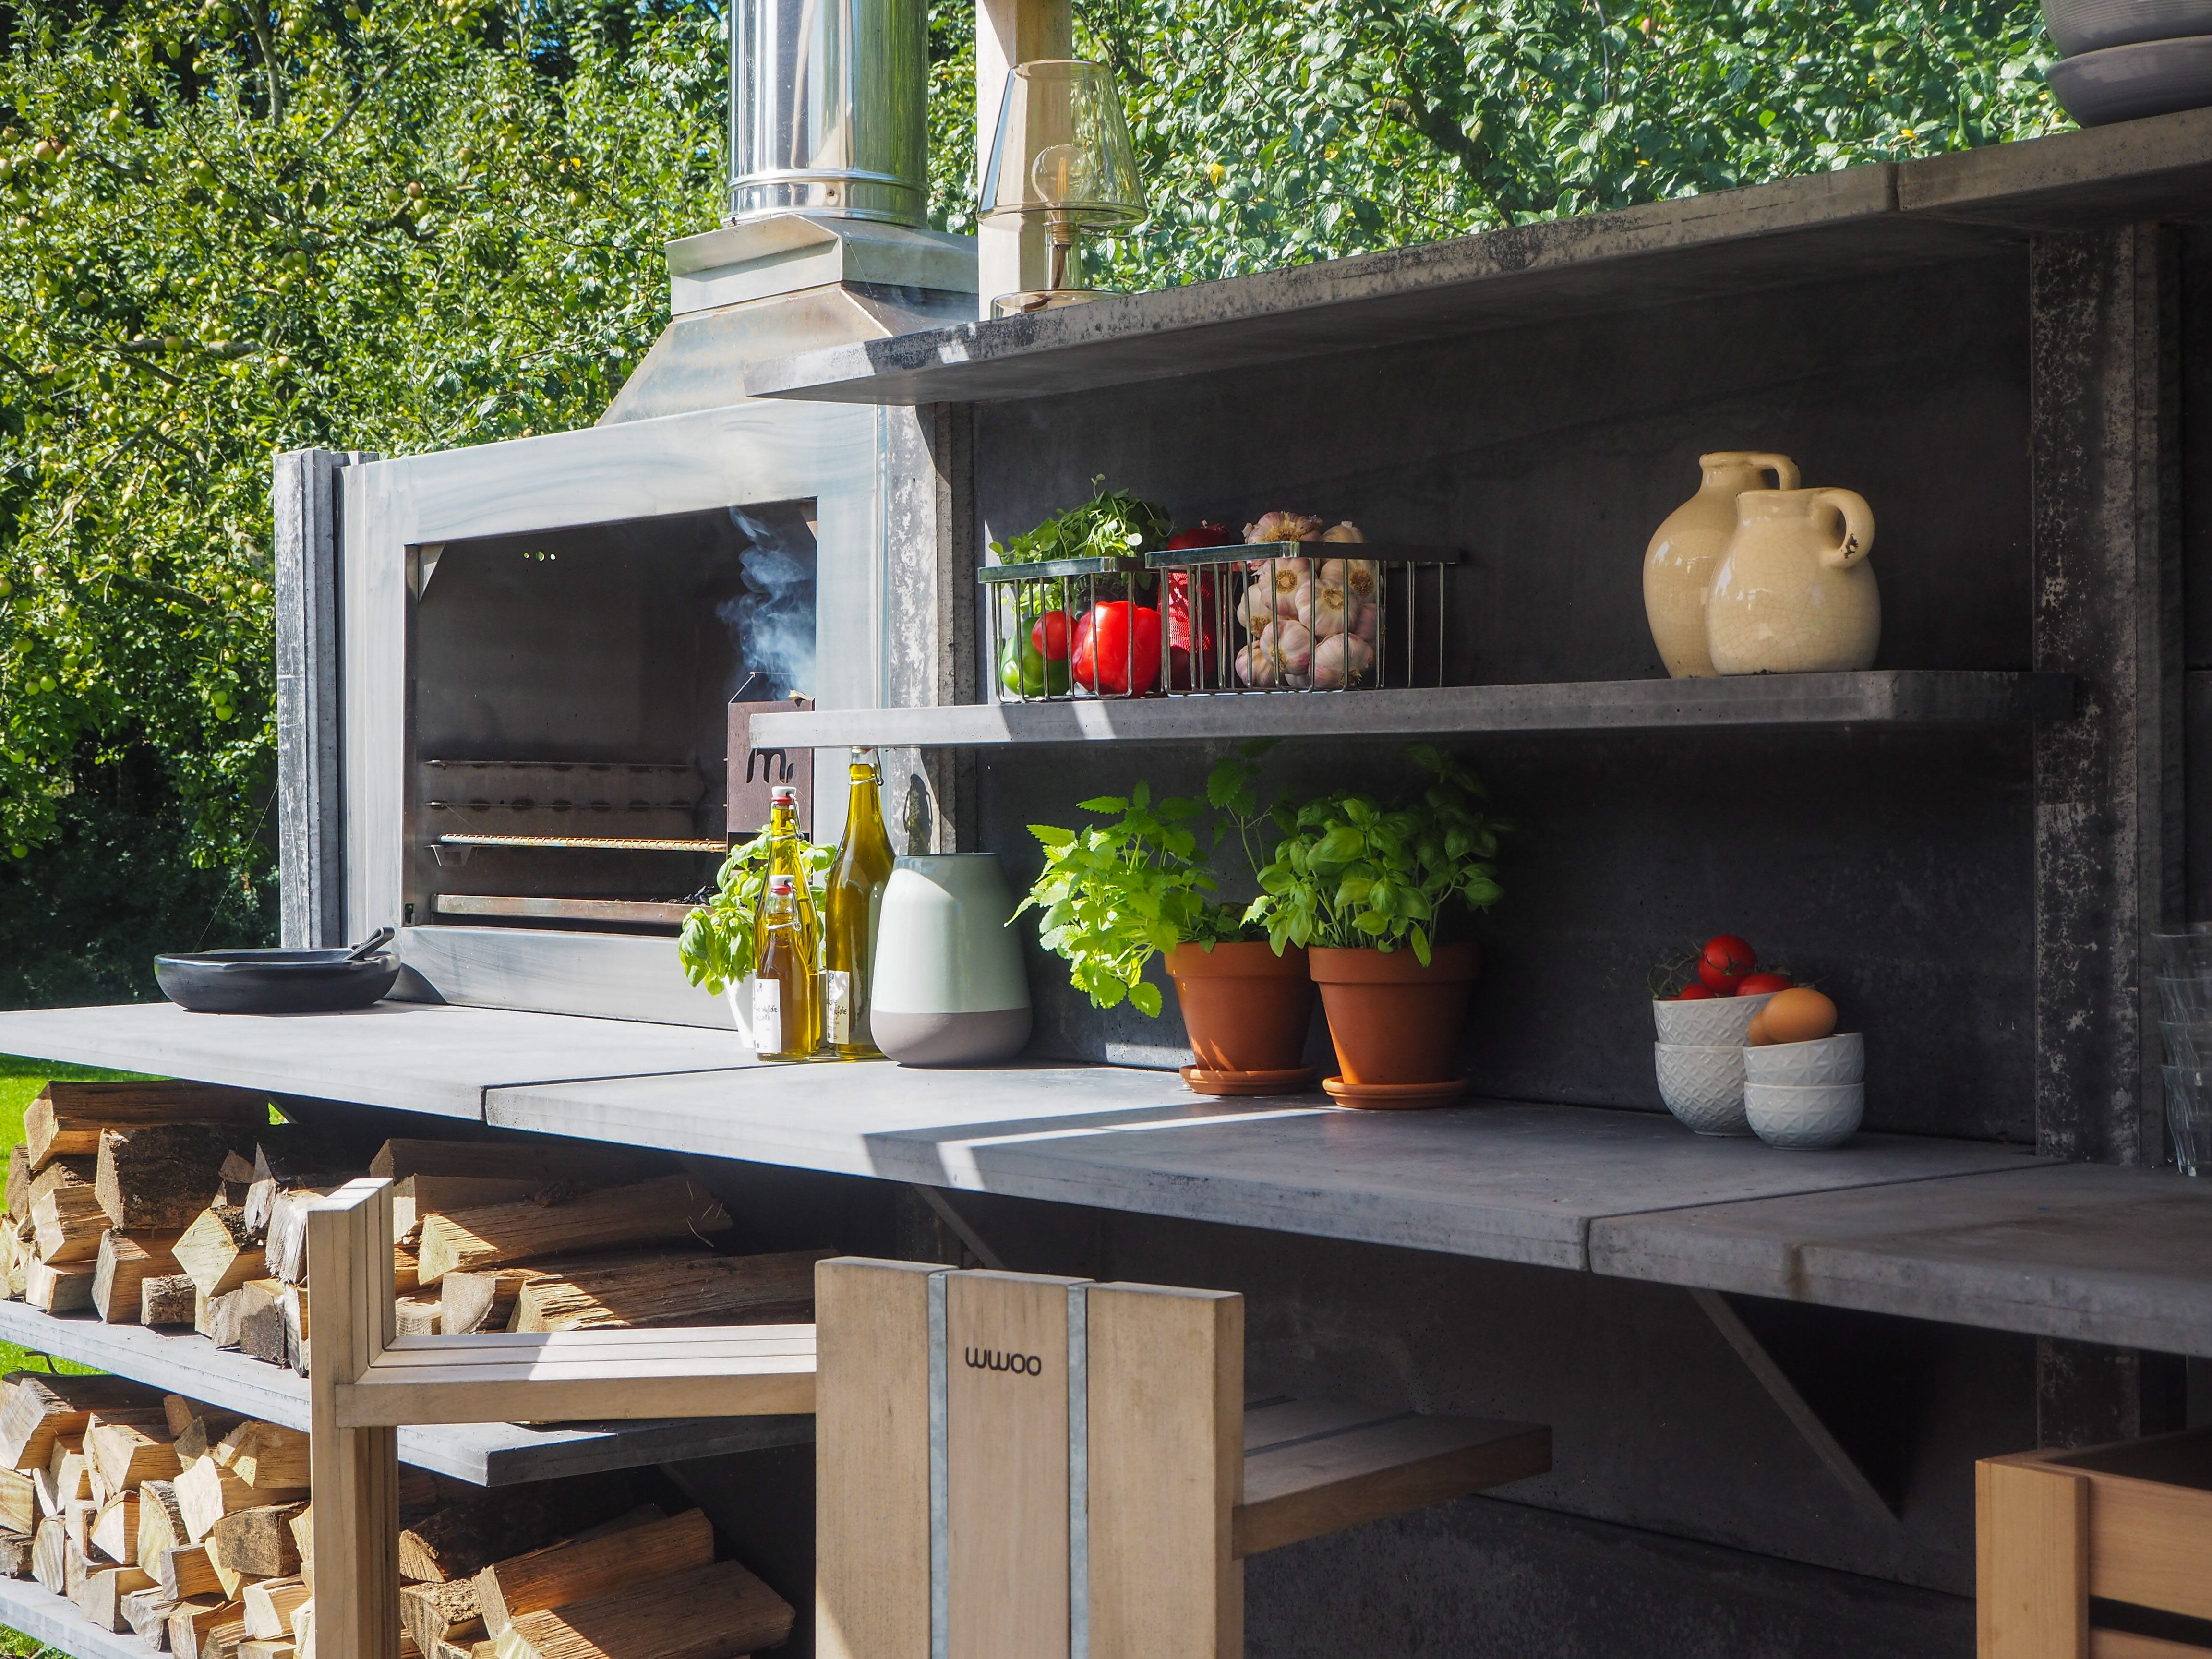 Wwoo outdoor kitchen in anthracite with the bar segment the braai